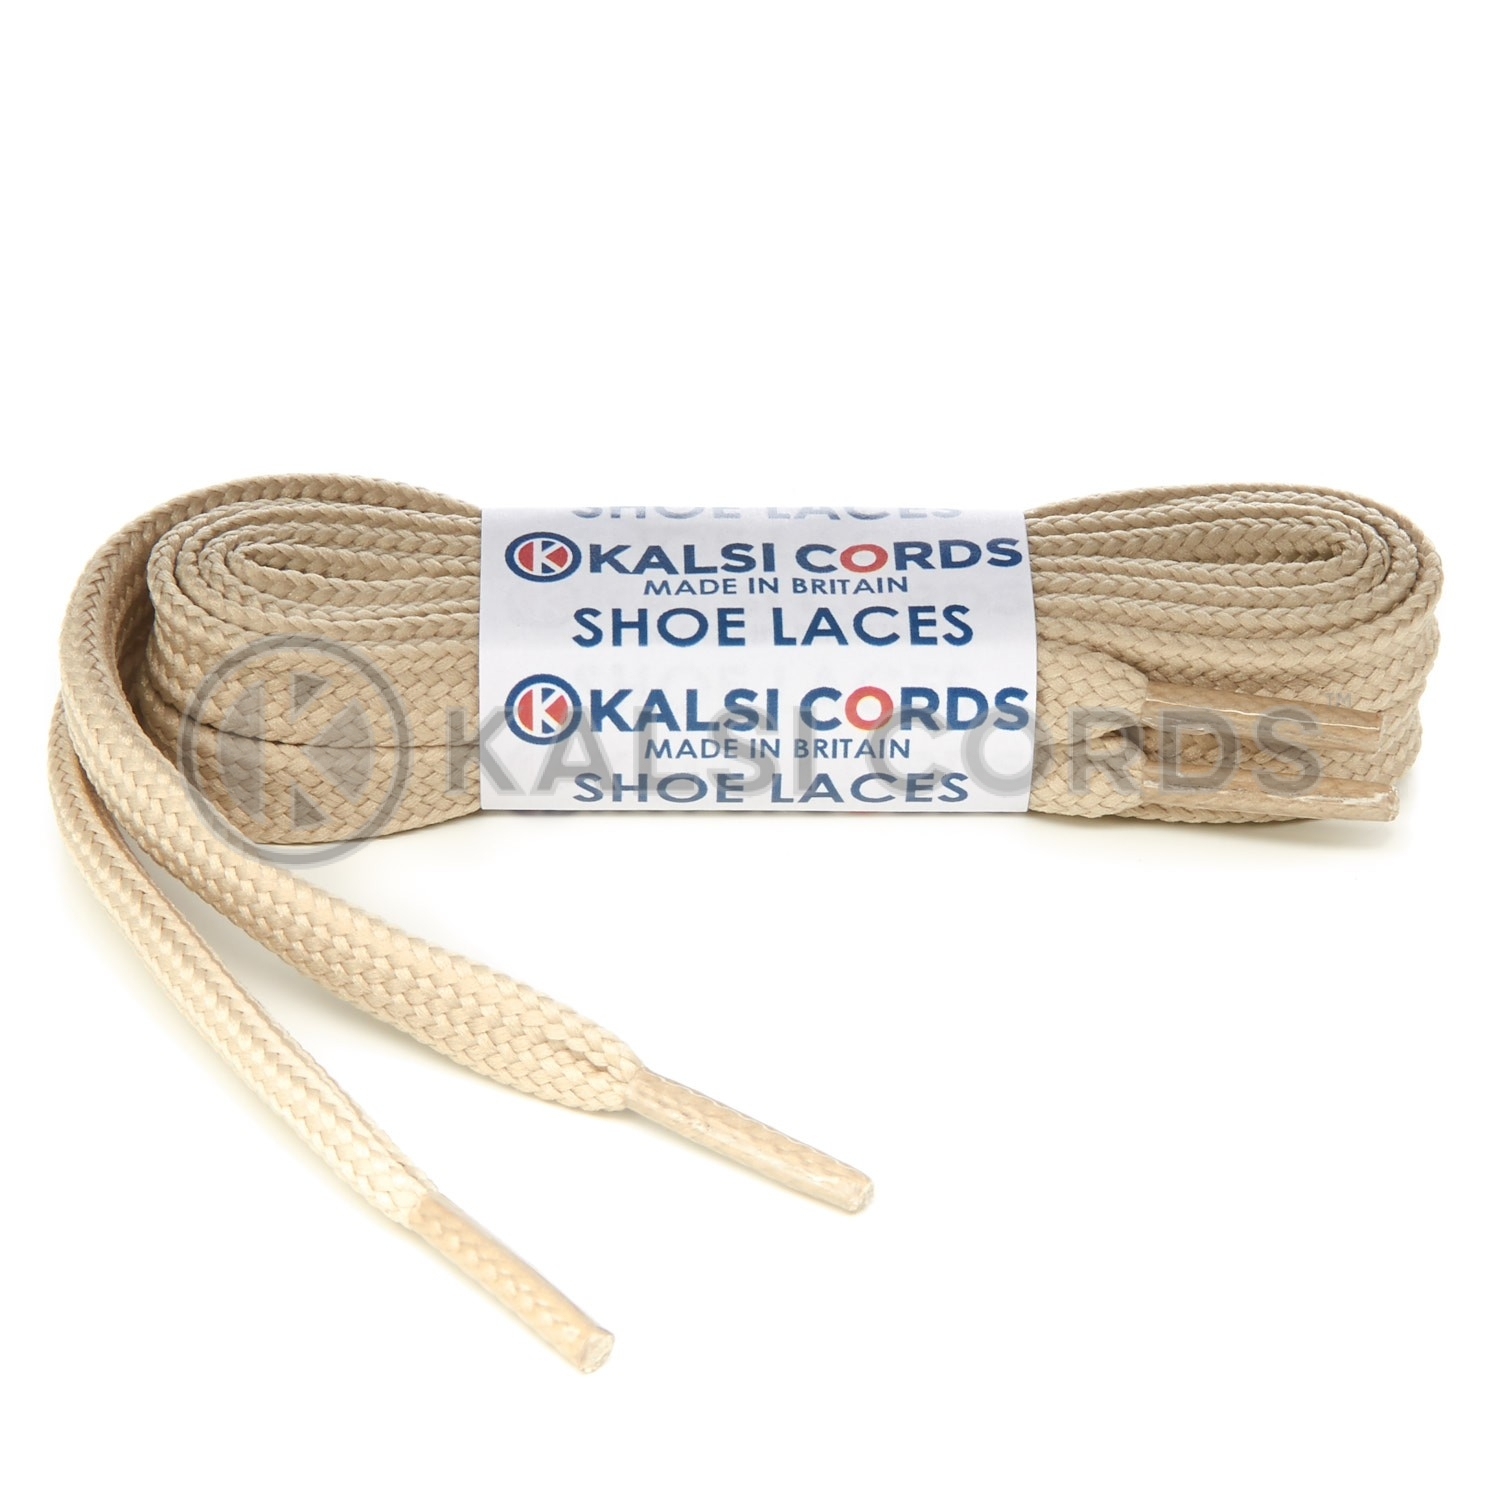 R1176 9mm Flat Shoe Laces Tubular Cream PG932 Sports Trainers Boots Footwear Hoodies Joggers Drawstring Drawcord Braid